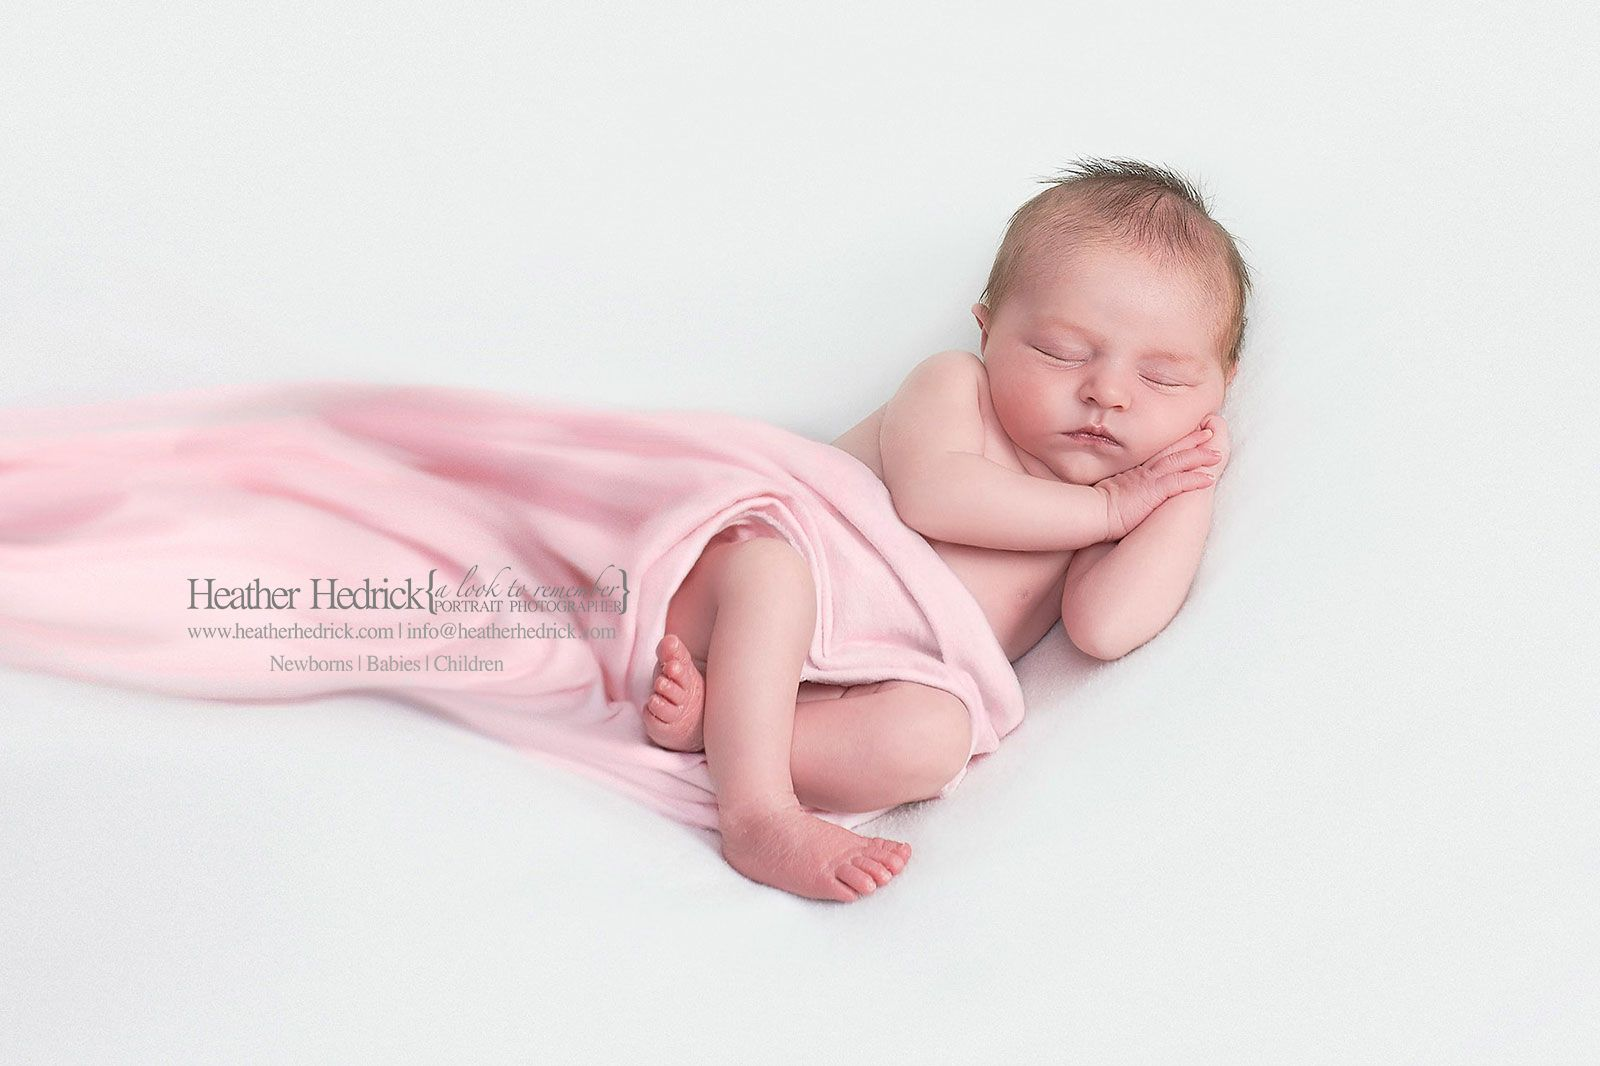 Cute newborn baby girl pictures 2 week old baby pictures newborn baby photography heather hedrick lexington nc